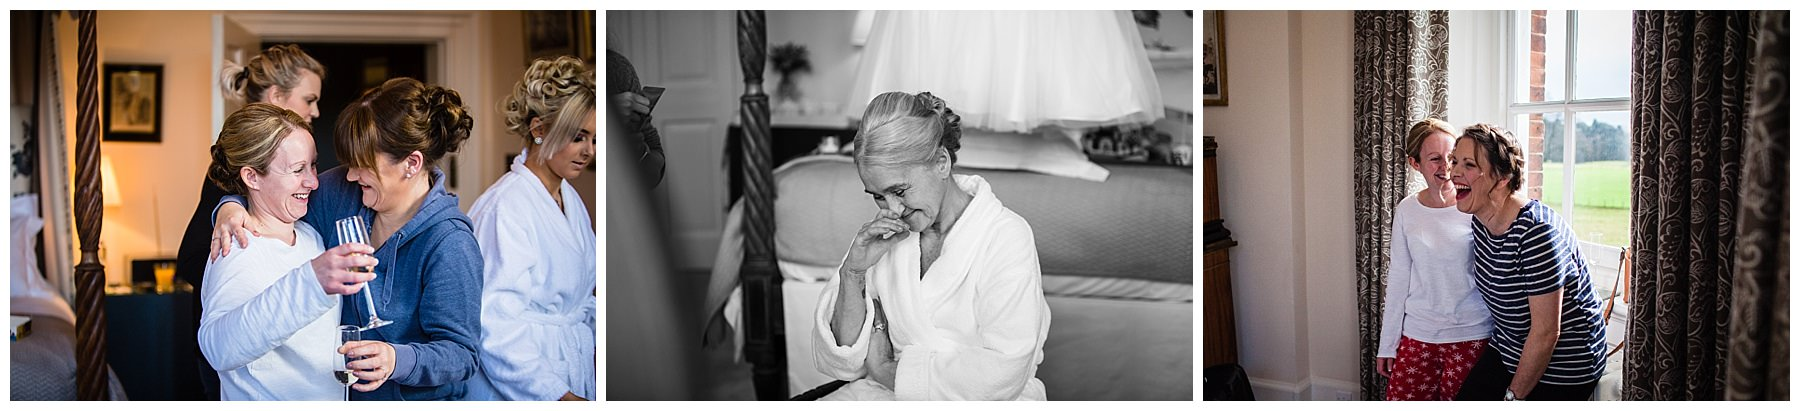 mother of the bride giggling to herself in the bridal suite amongst the chaos